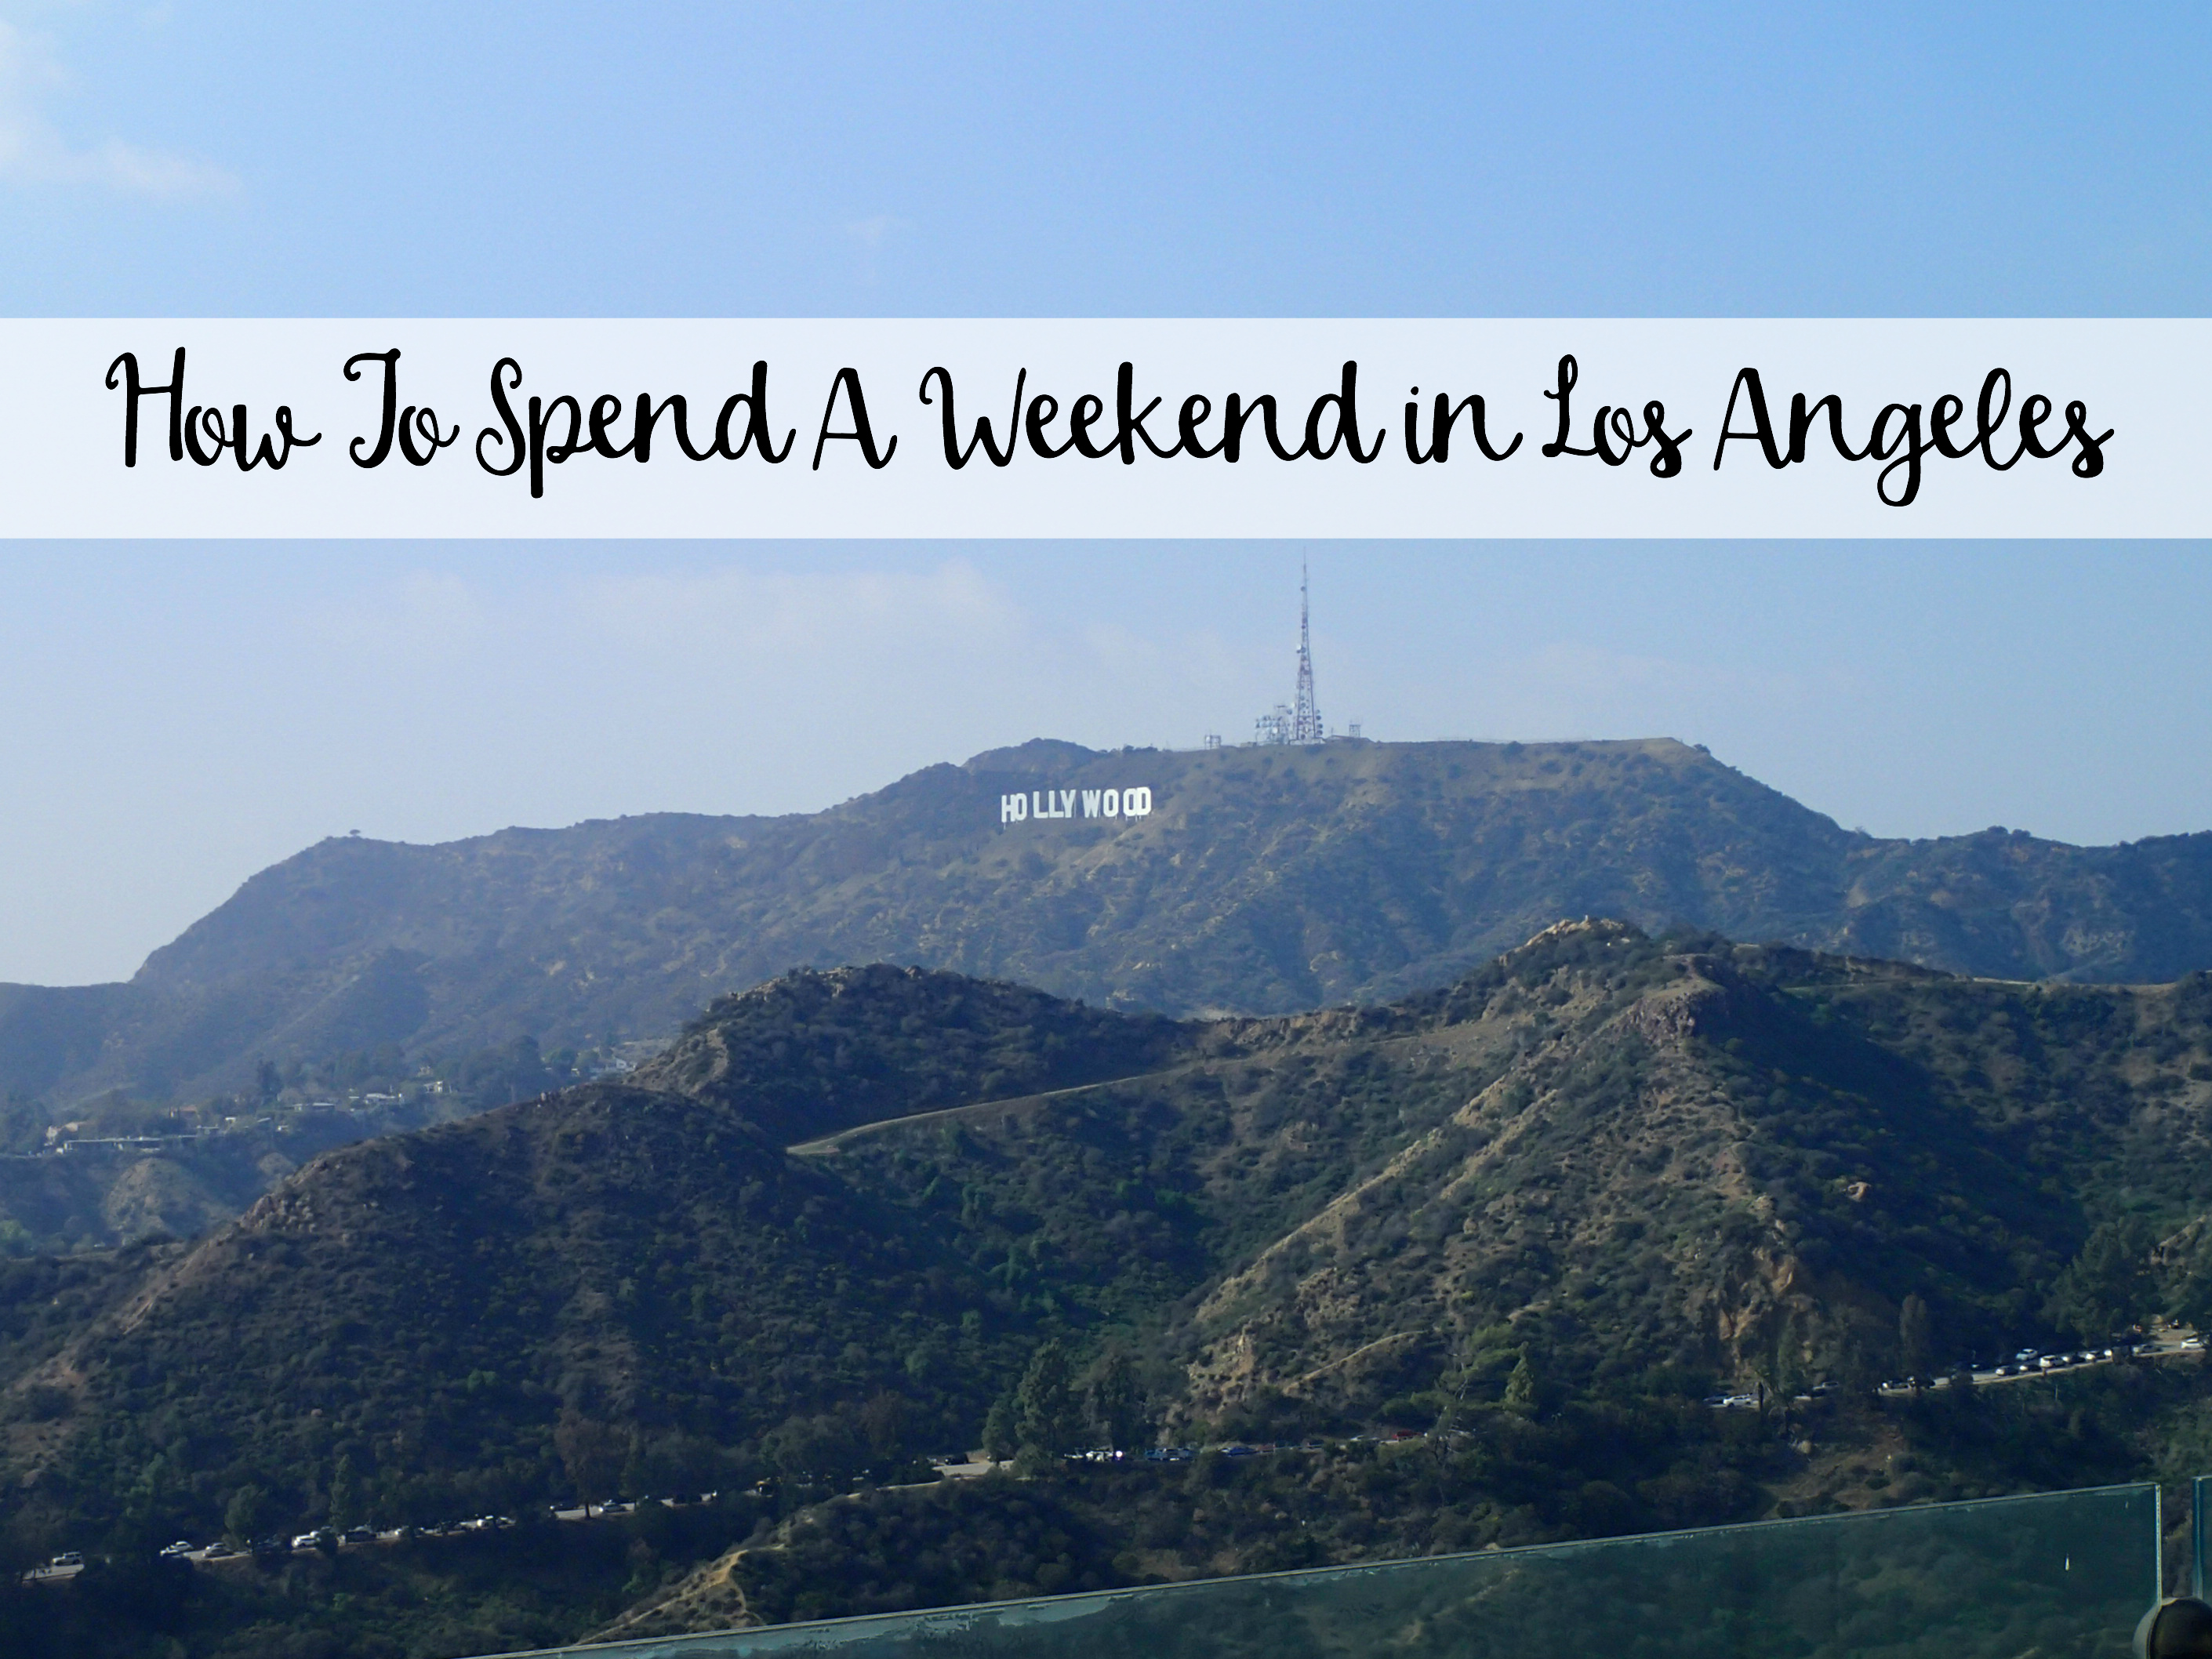 Where to spend the weekend 69